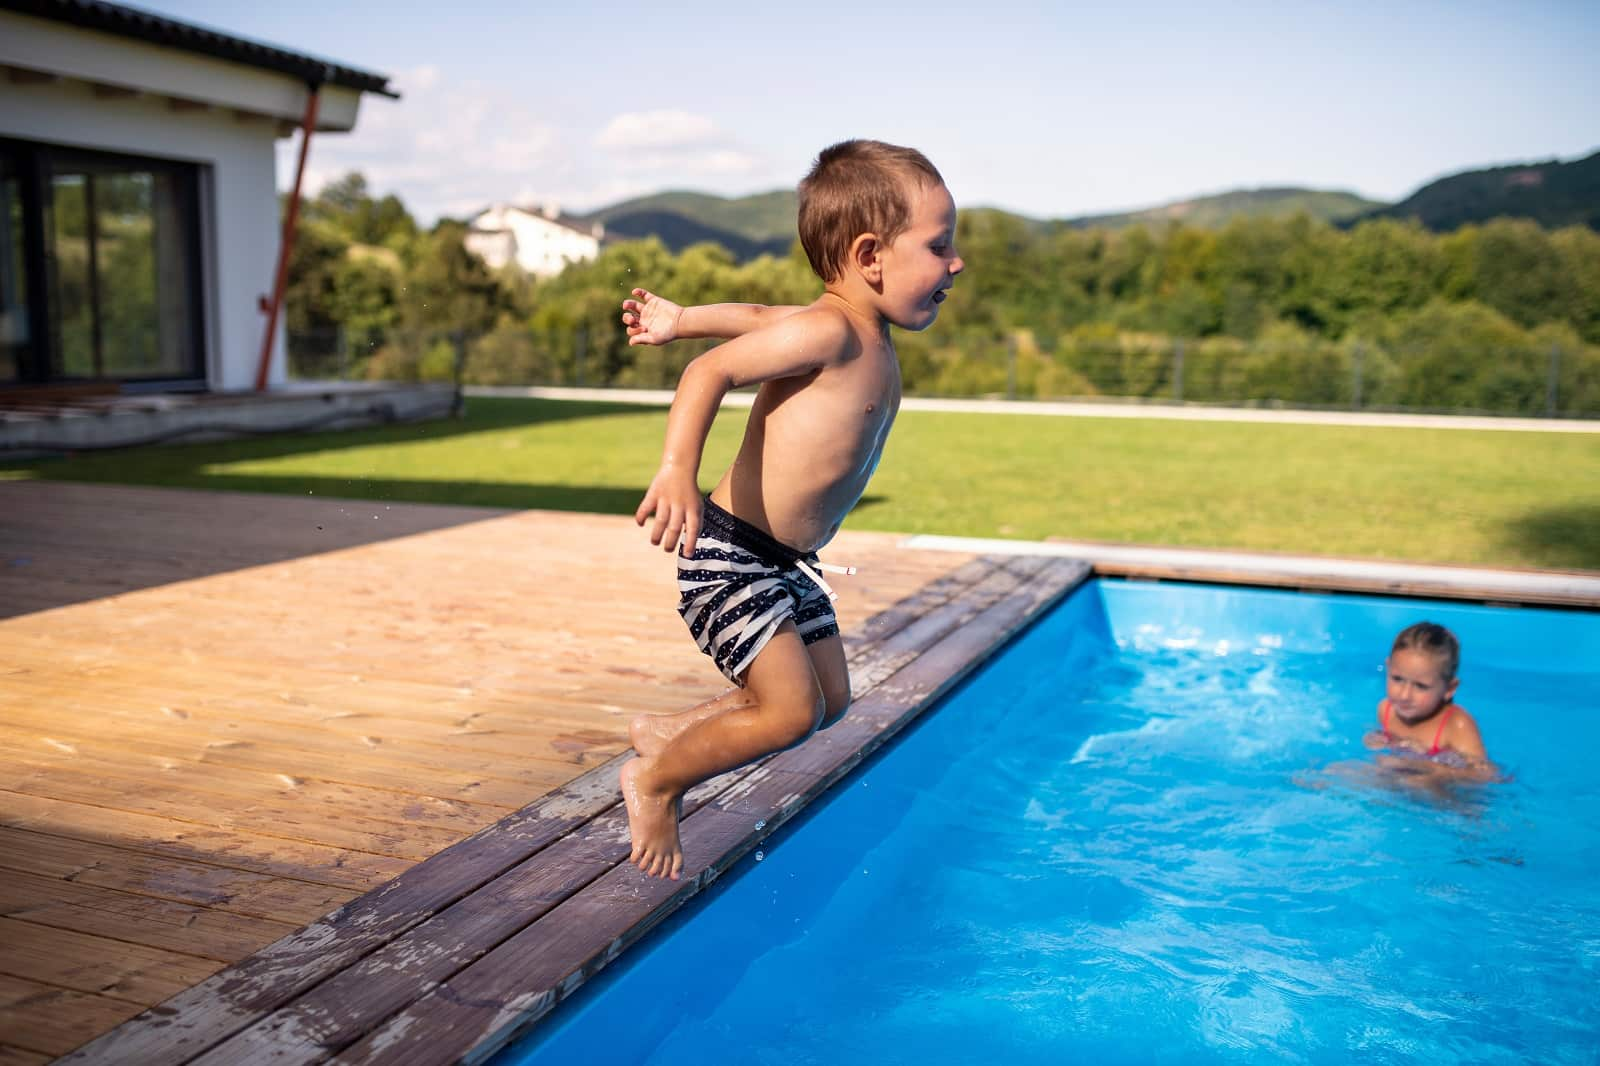 6 Pool Design Tips If You Have A Small Backyard. The boy jumping into the pool